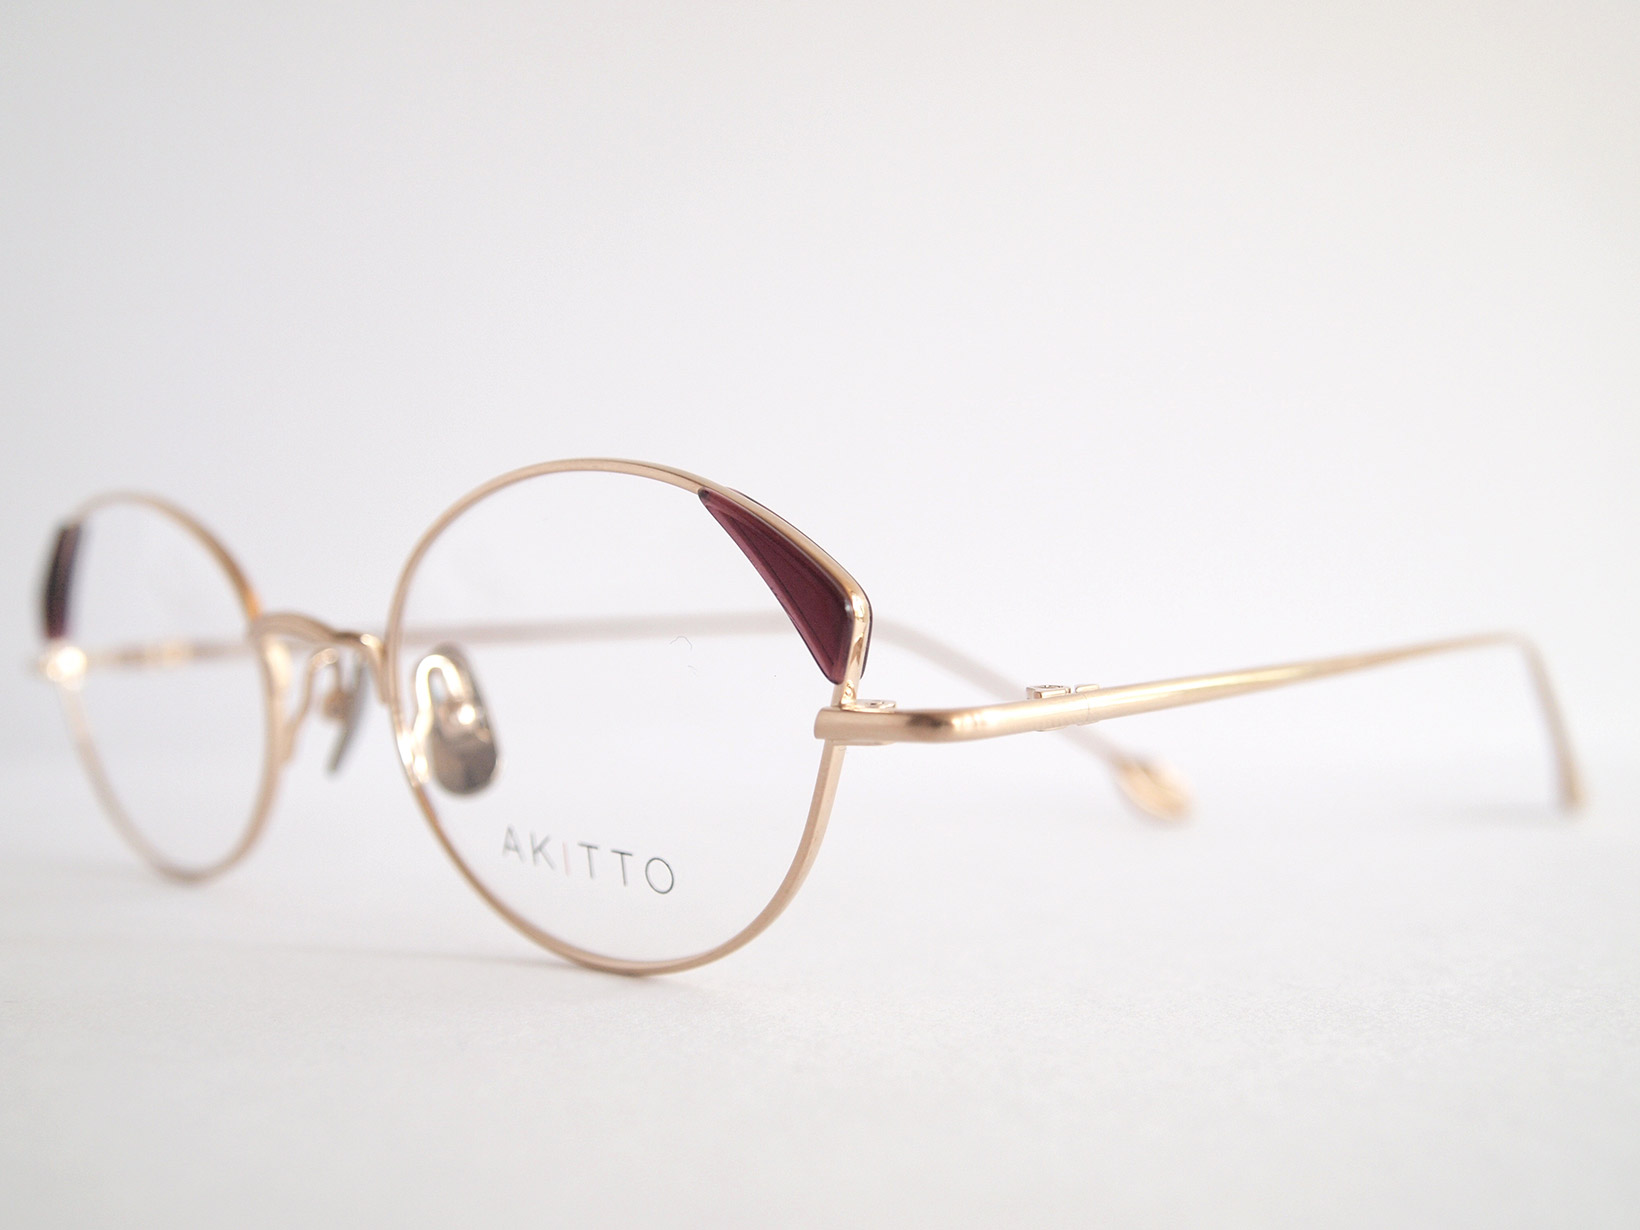 AKITTO 2018-4th pin4 color|WN size:47□19 material:titanium+acetate price:¥42,000-(+tax)